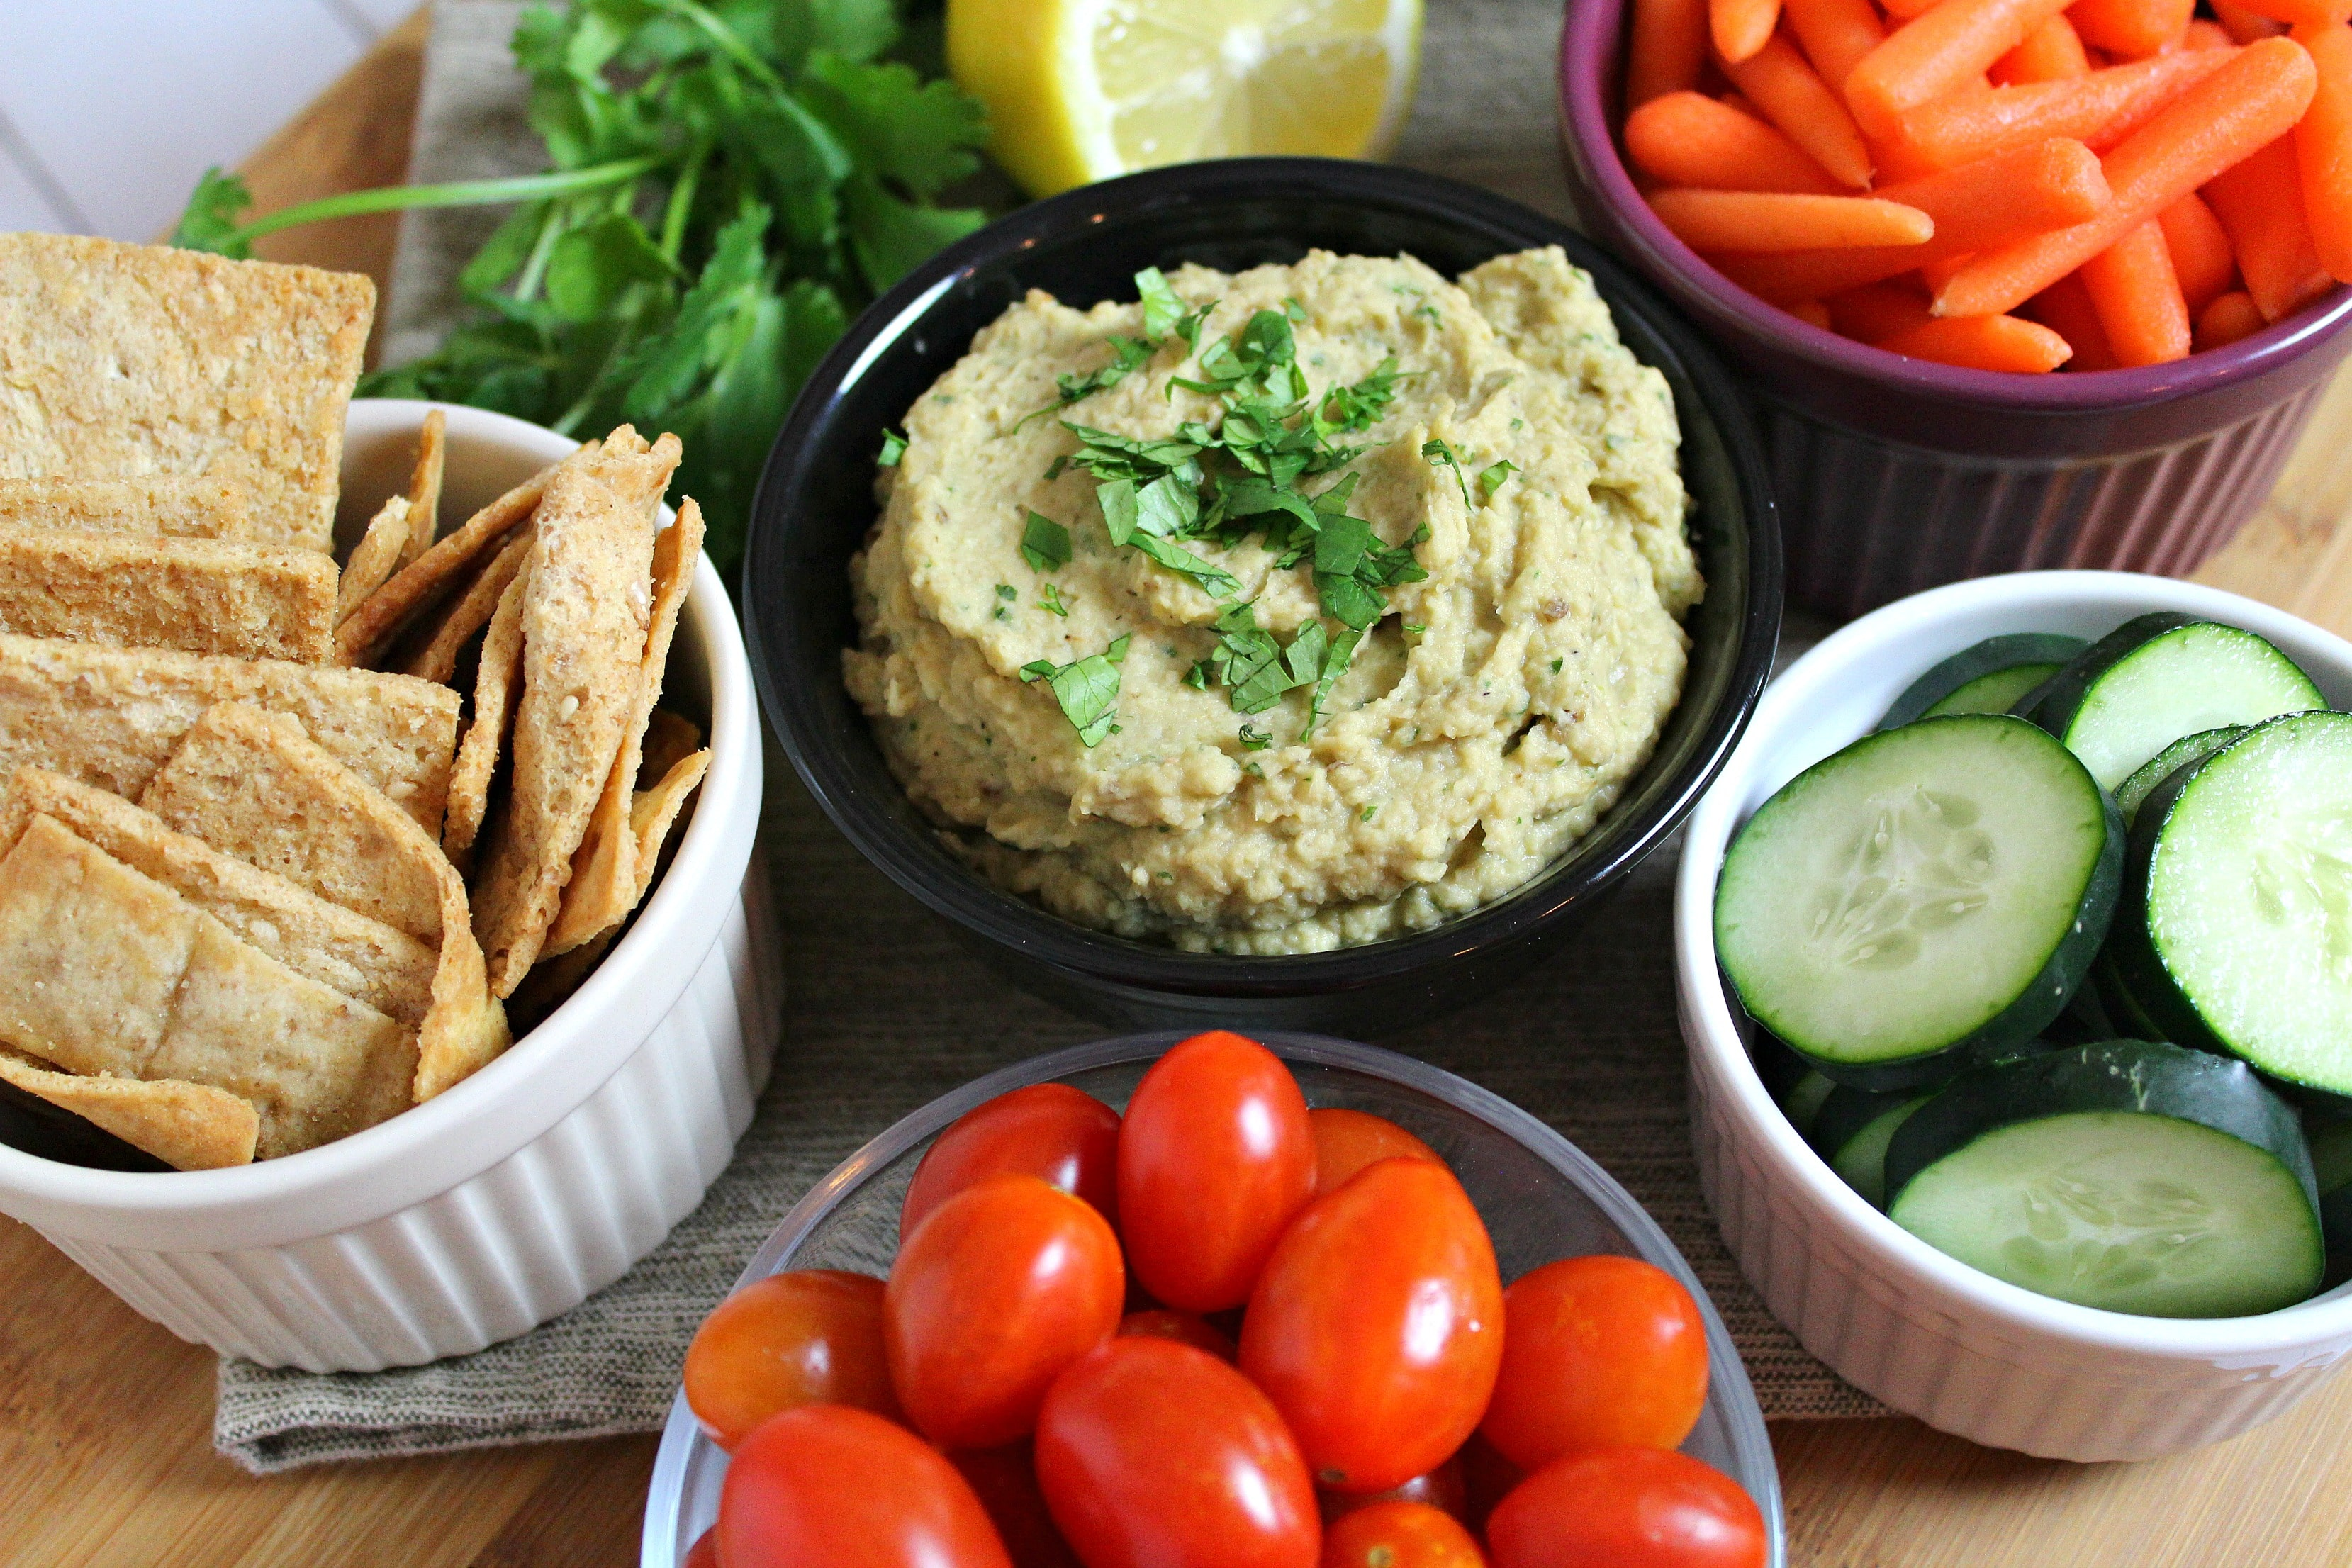 Serve hummus dip with veggies or crackers, or use as a sandwich spread.